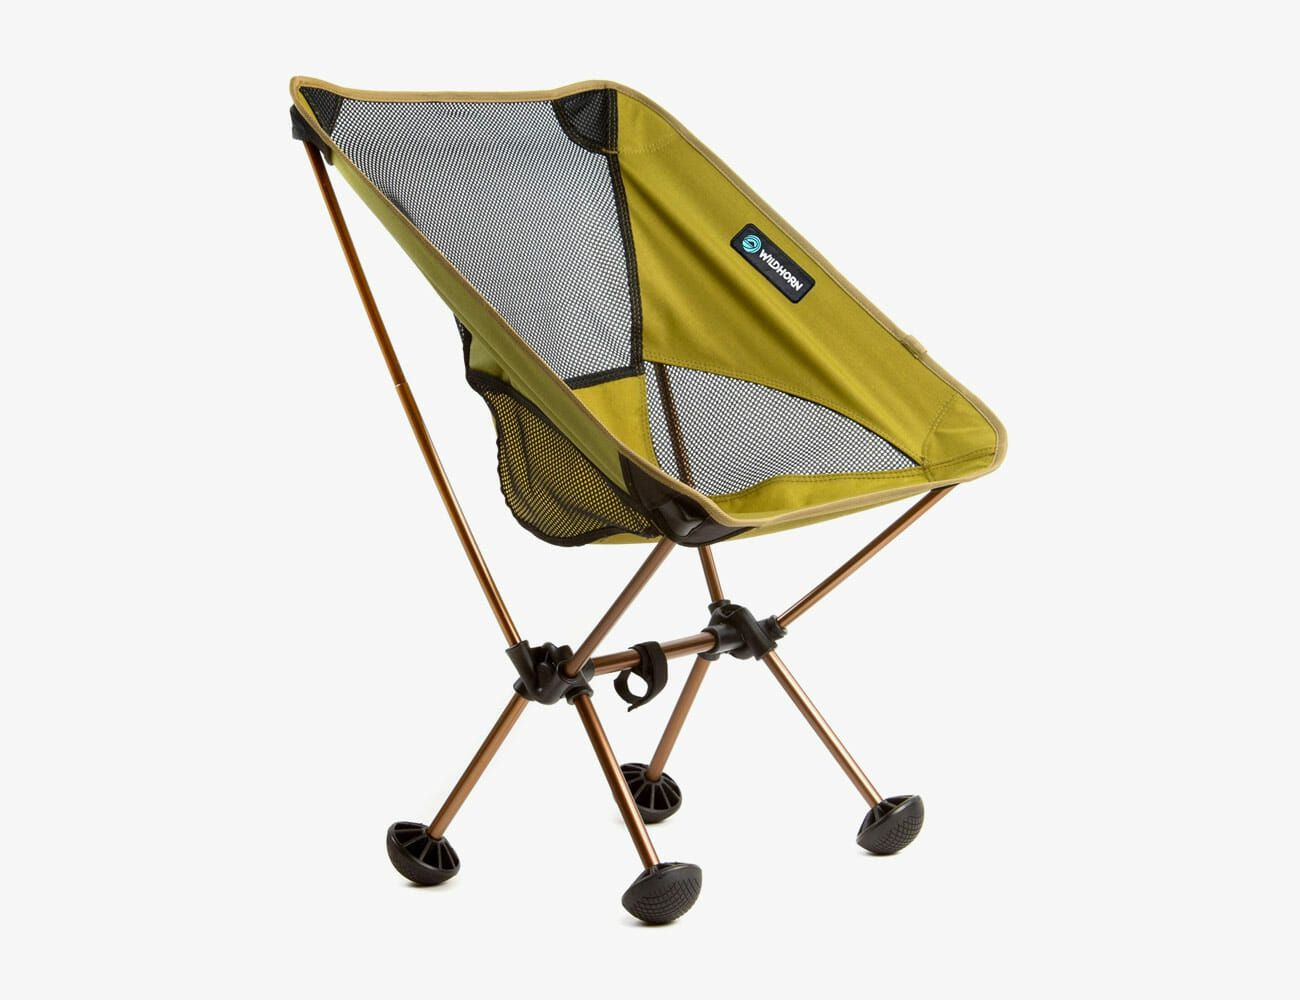 Super The 10 Best Beach Chairs You Can Buy In 2018 Gear Patrol Theyellowbook Wood Chair Design Ideas Theyellowbookinfo